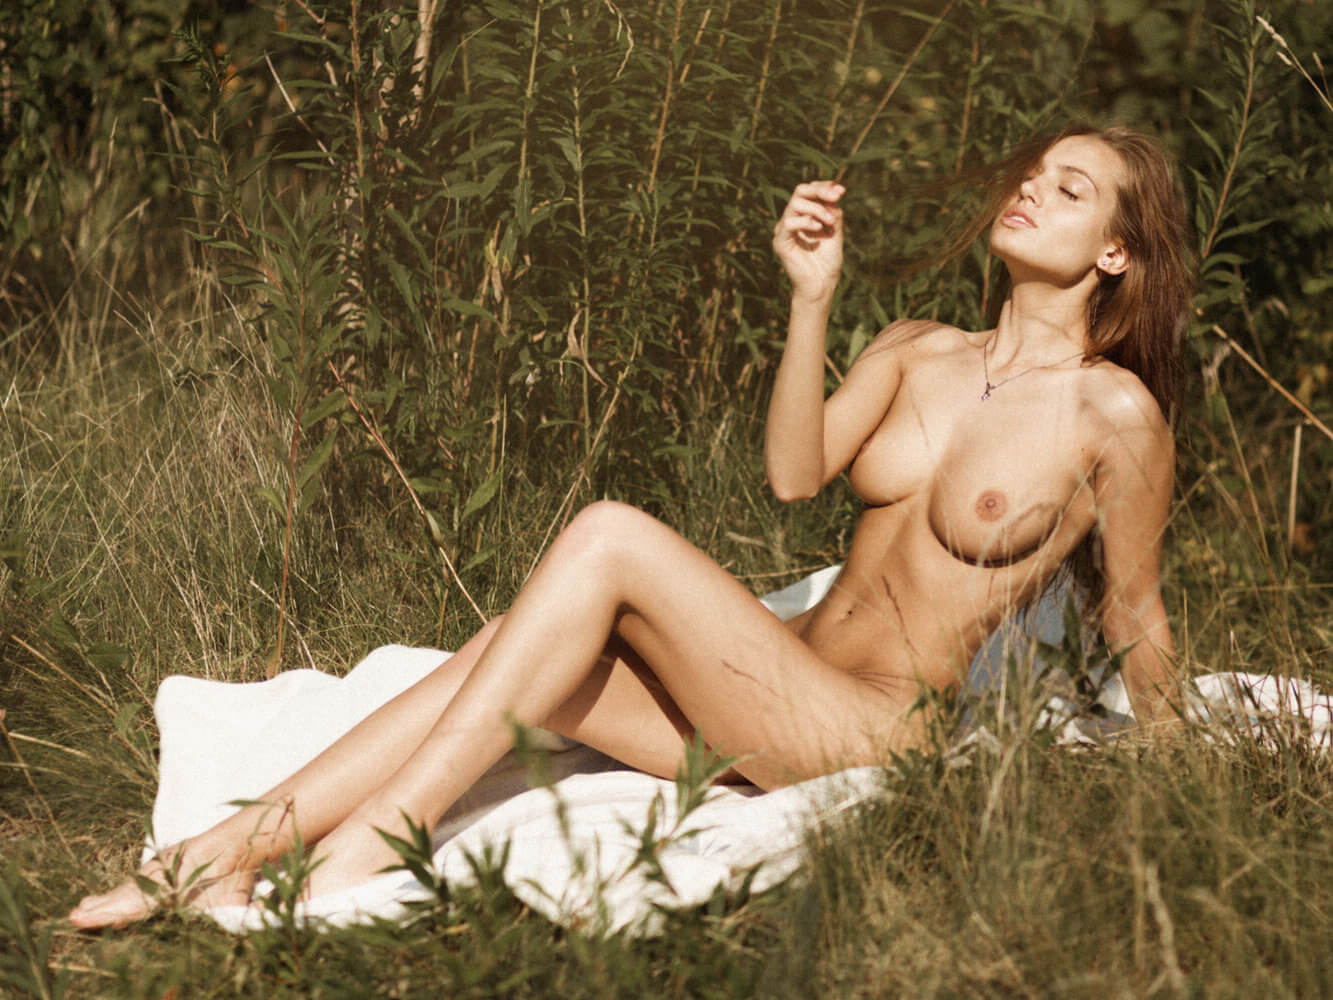 Sophy Angel naked under the sun by Thomas Ringhofer